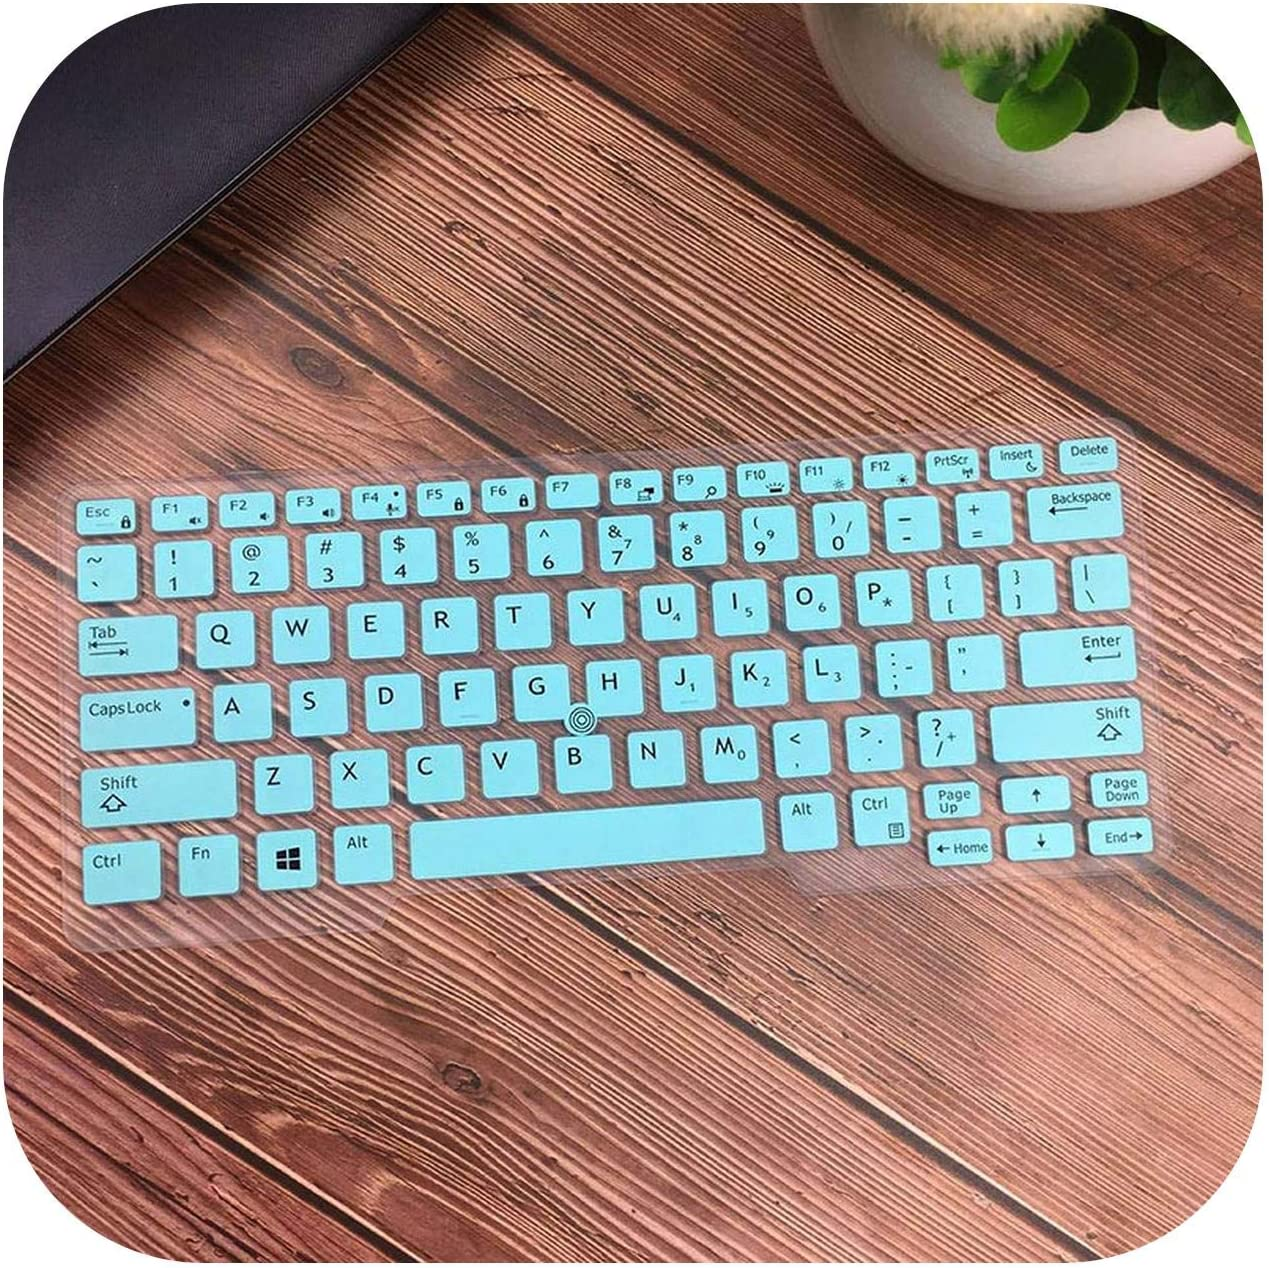 Film Pour Clavier Laptop Keyboard Cover Protector for Dell Latitude E7470 E5480 E5490 E5491 7480 E5480 7490 E7450 E5450 E5470 E7350 E3350 E5470 14-Clear